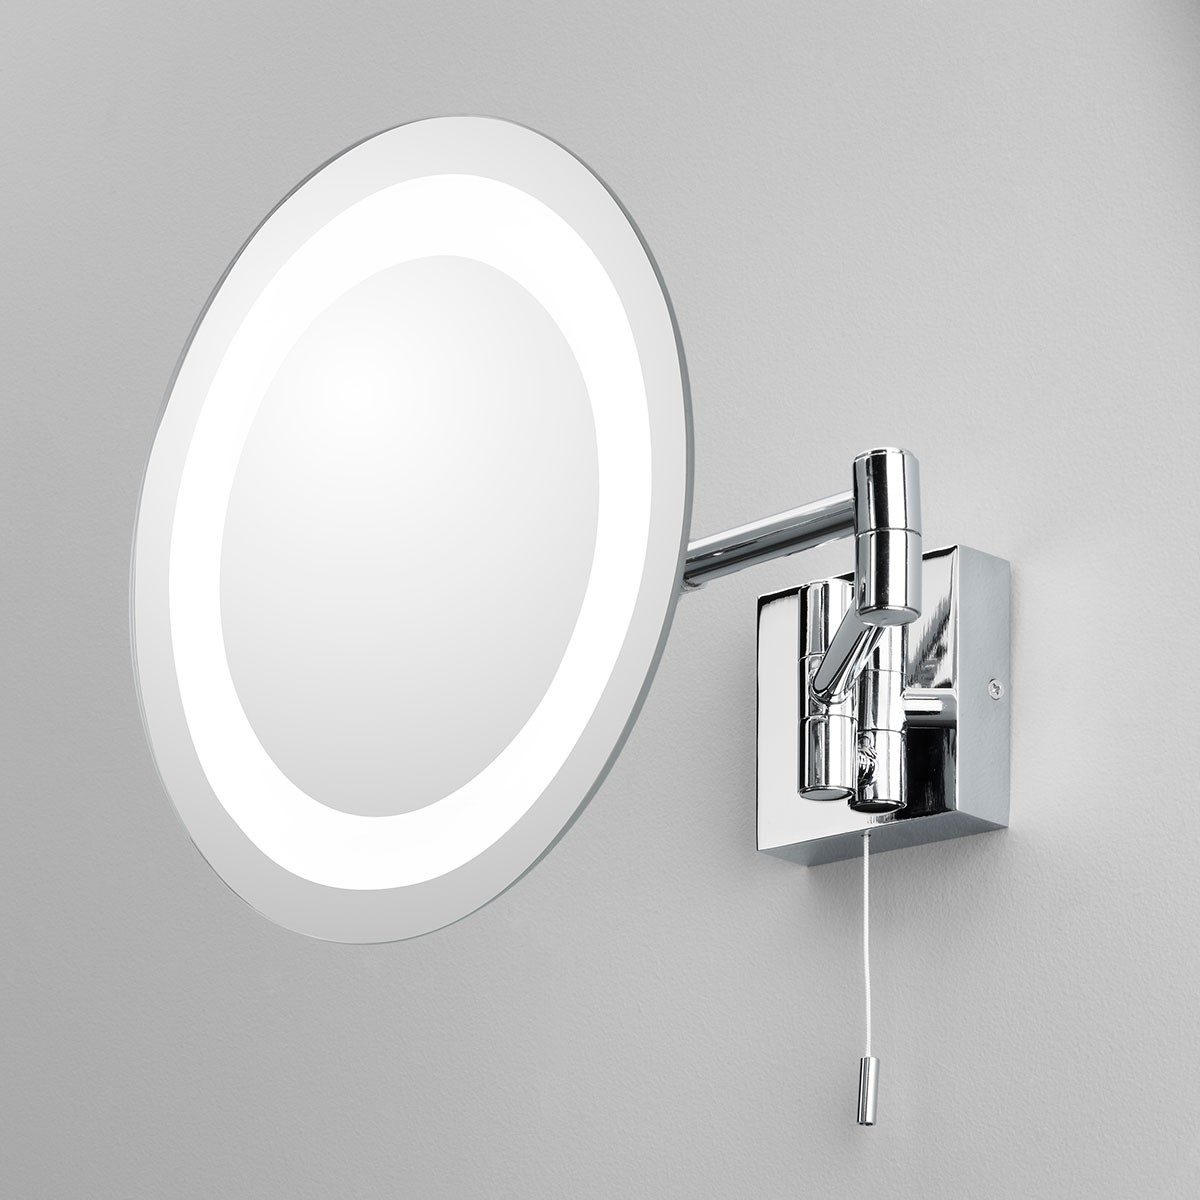 Astro genova polished chrome bathroom mirror light at uk electrical supplies Polished chrome bathroom mirrors